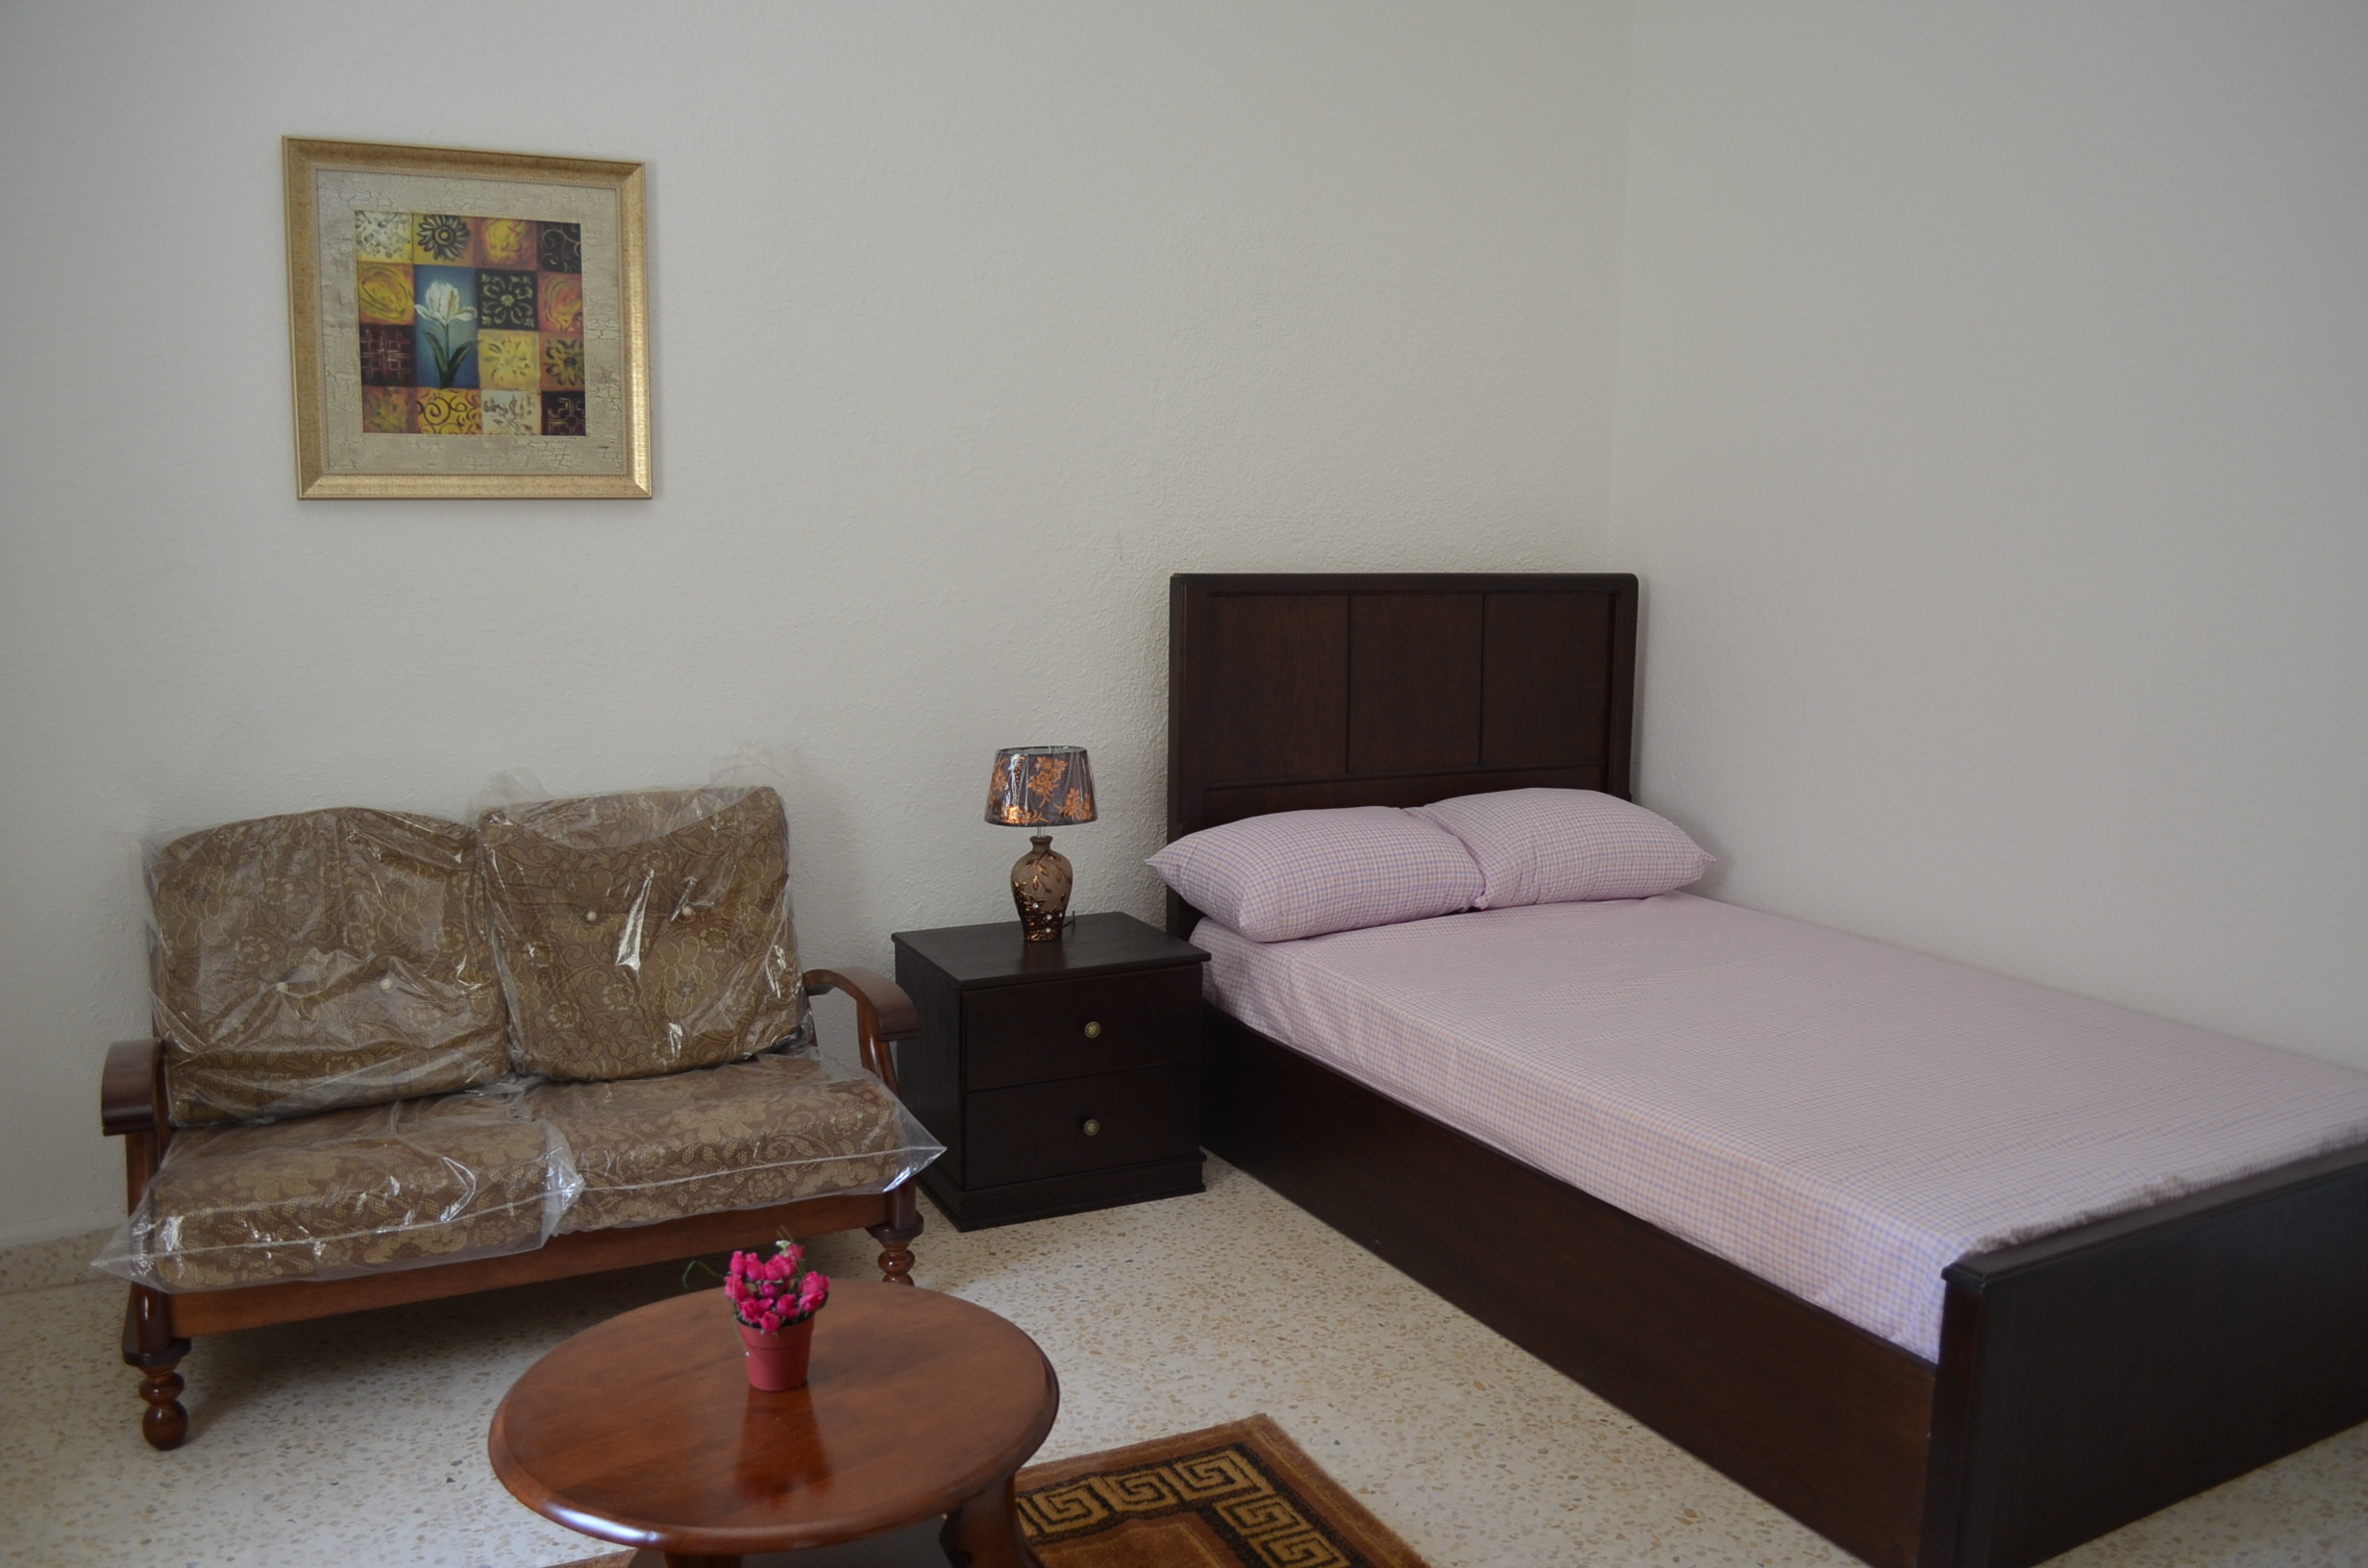 Best ideas about One Bedroom Apartment For Rent . Save or Pin Ez Rent e Bedroom Apartments For Rent in Amman Jordan Now.